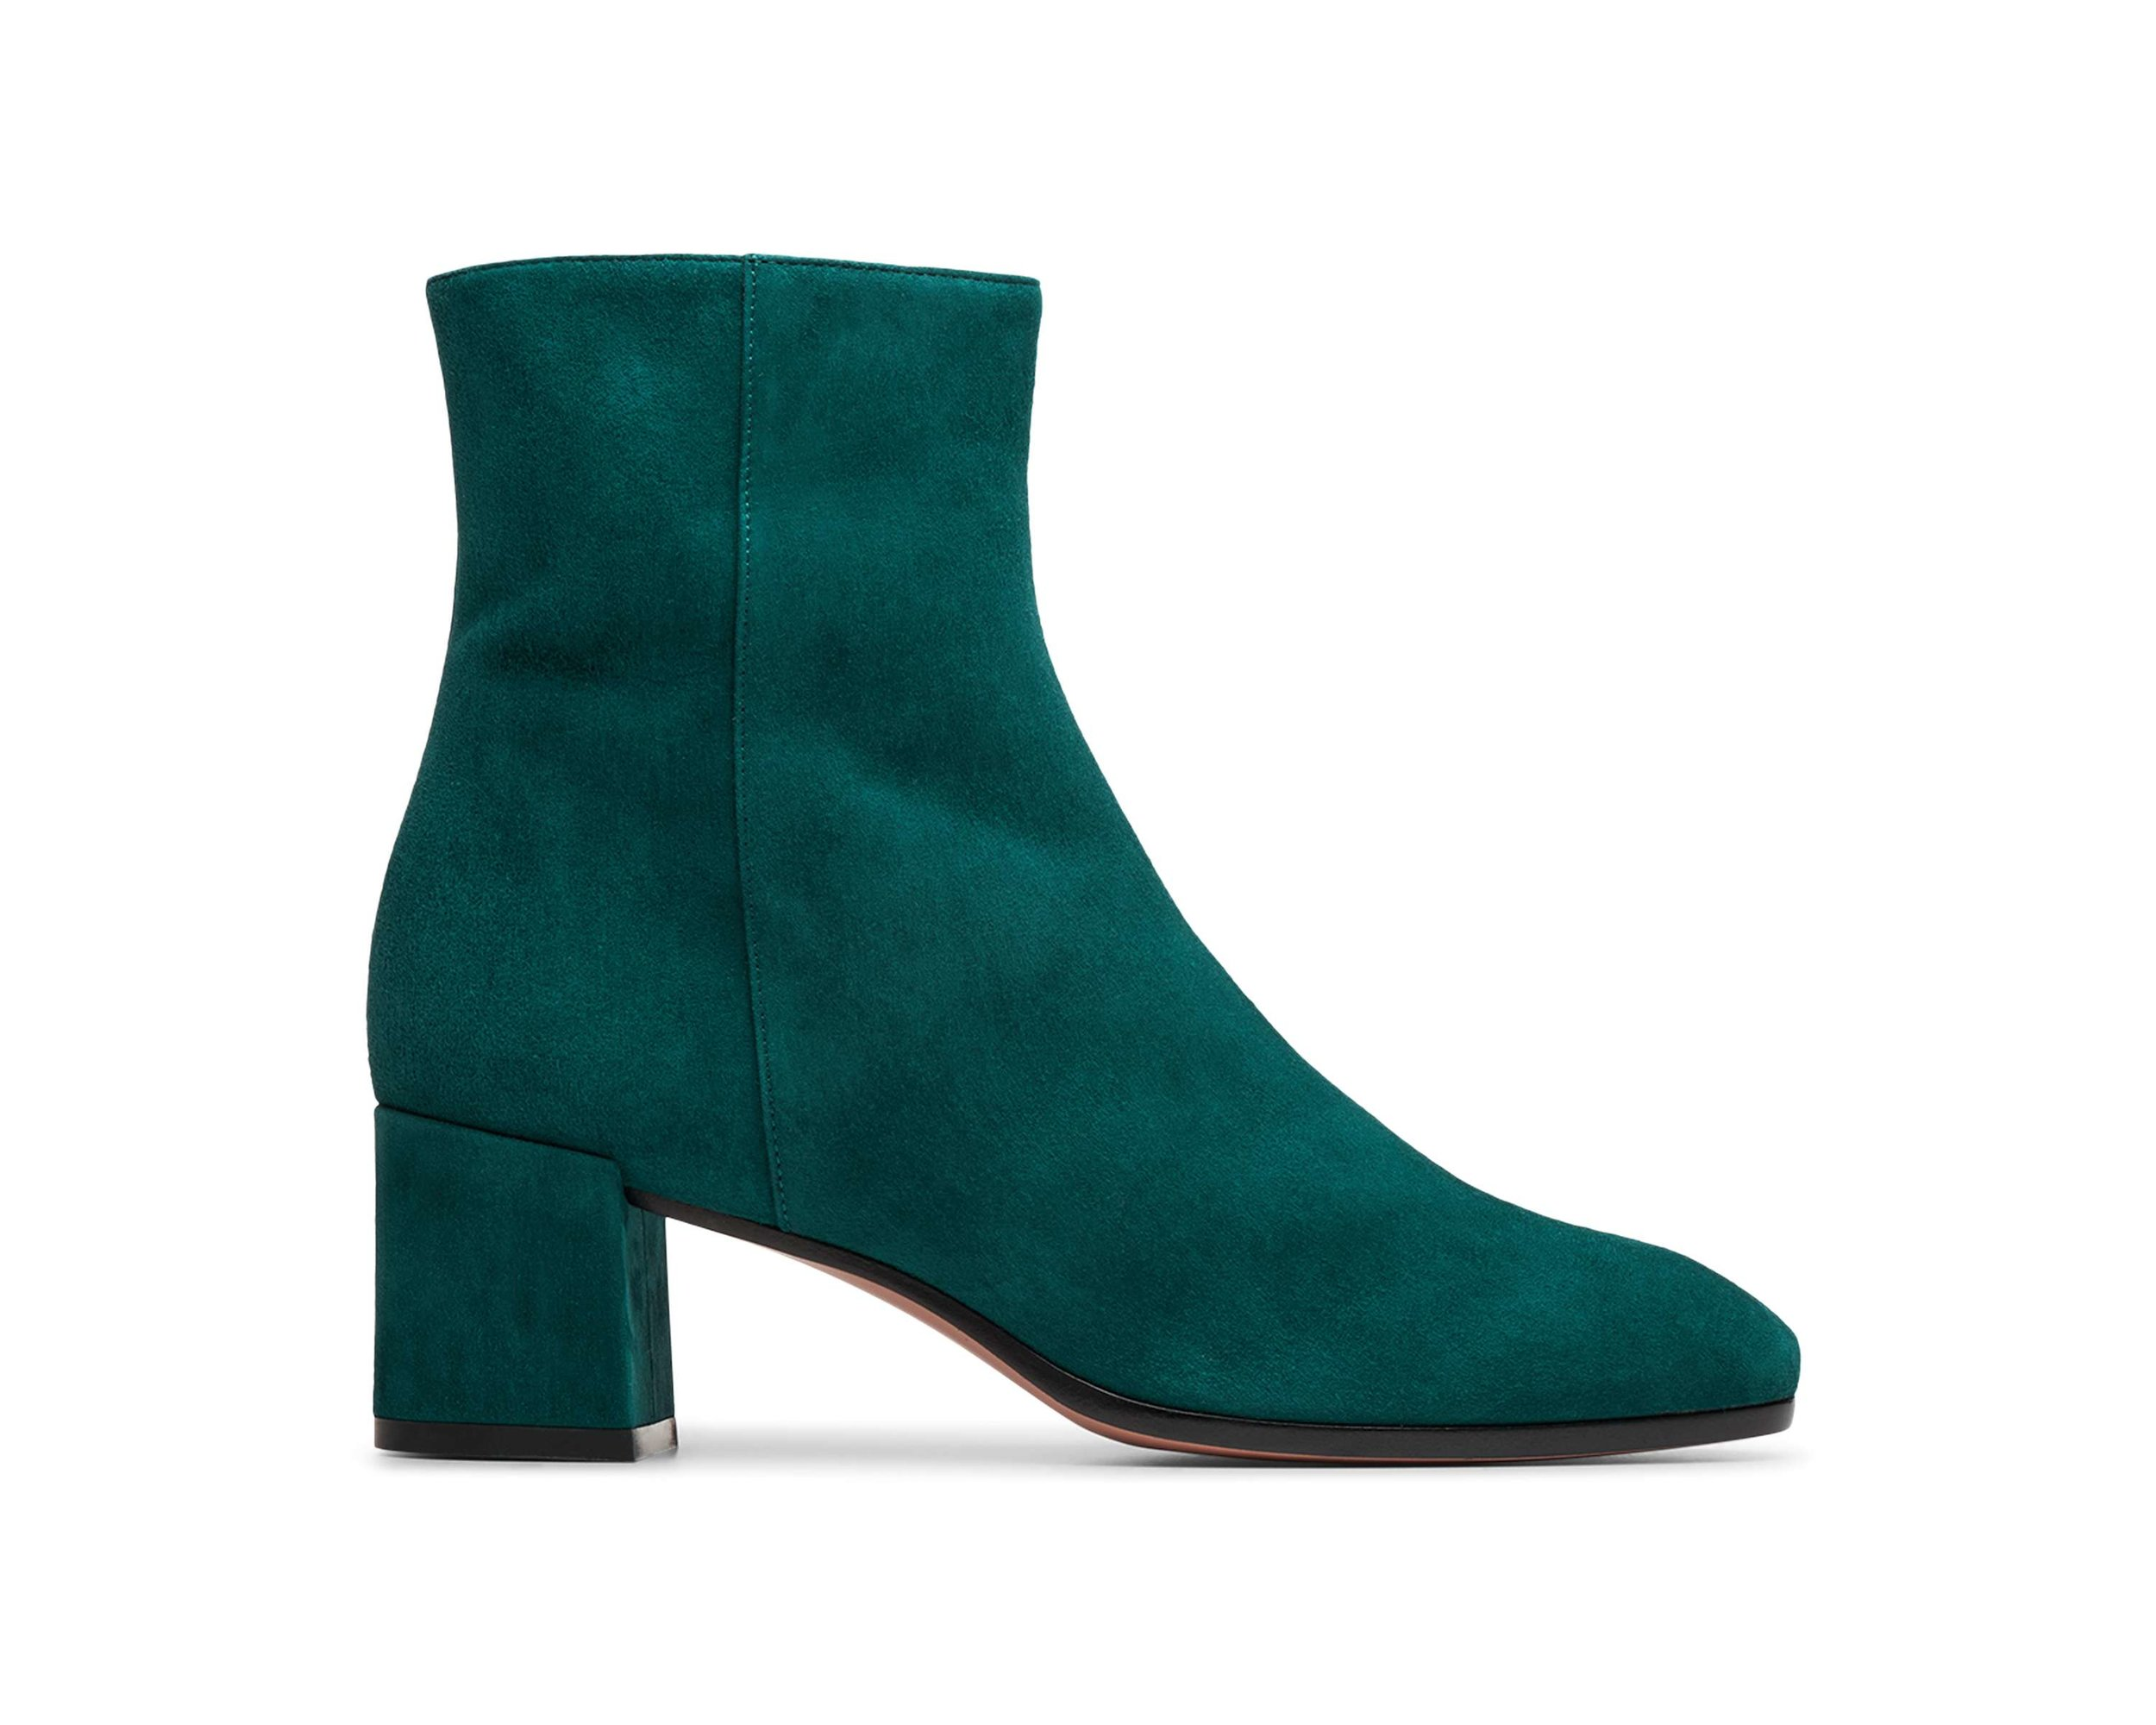 Corsa Booties - An ankle bootie from M. Gemi, perfect for walking around all day yet still incredibly fashionable. Handmade in Italy.